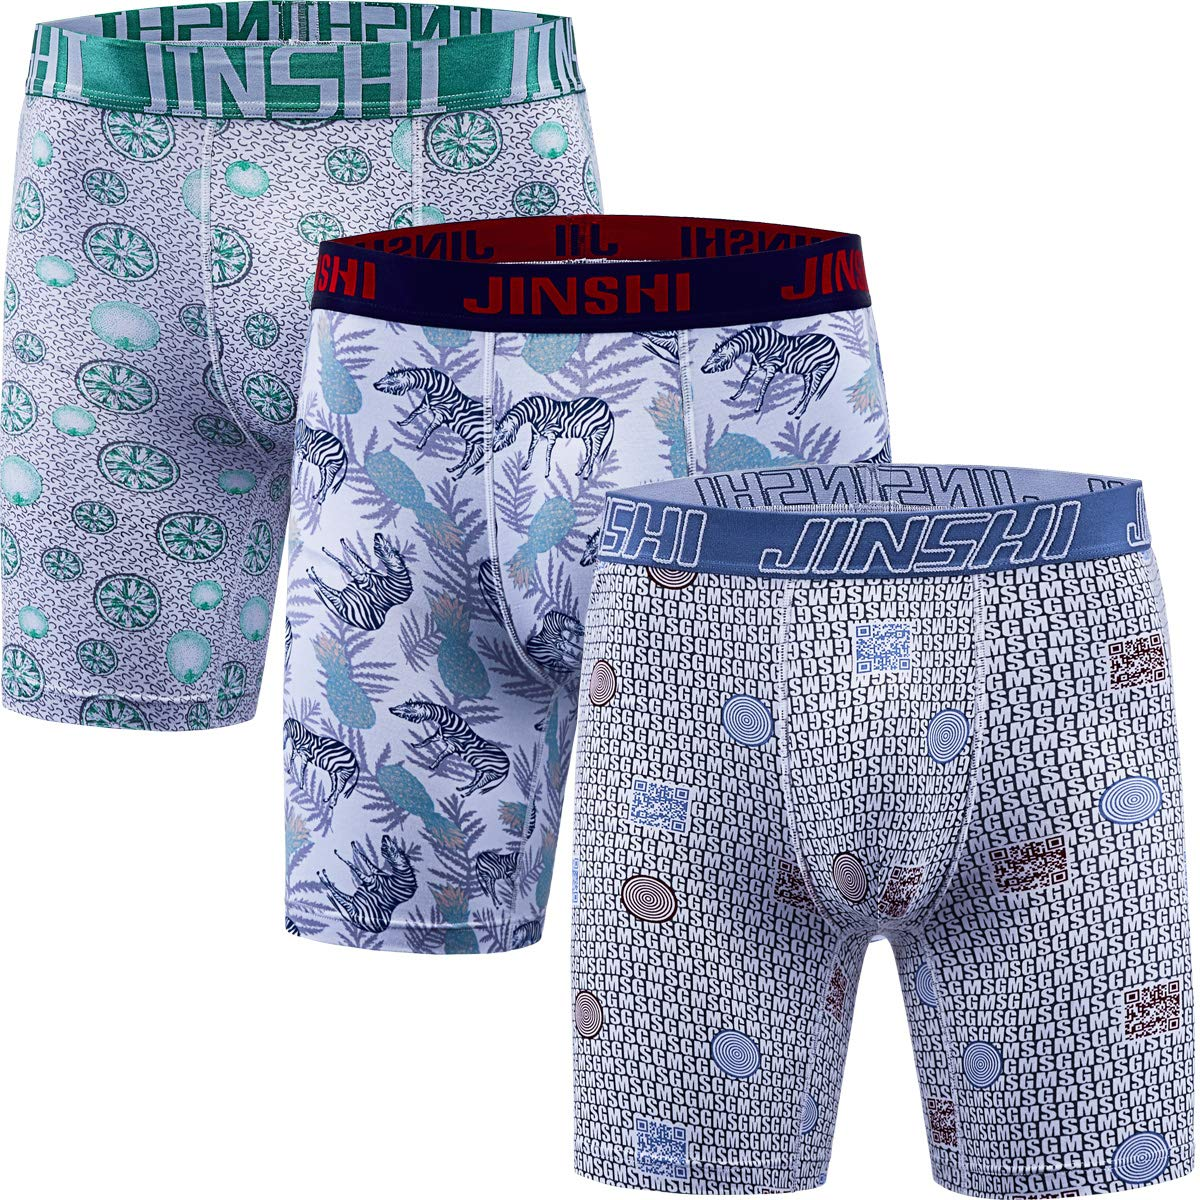 JINSHI Men's Underwear Bamboo Performance Long Boxer Briefs JSYHL-Printed